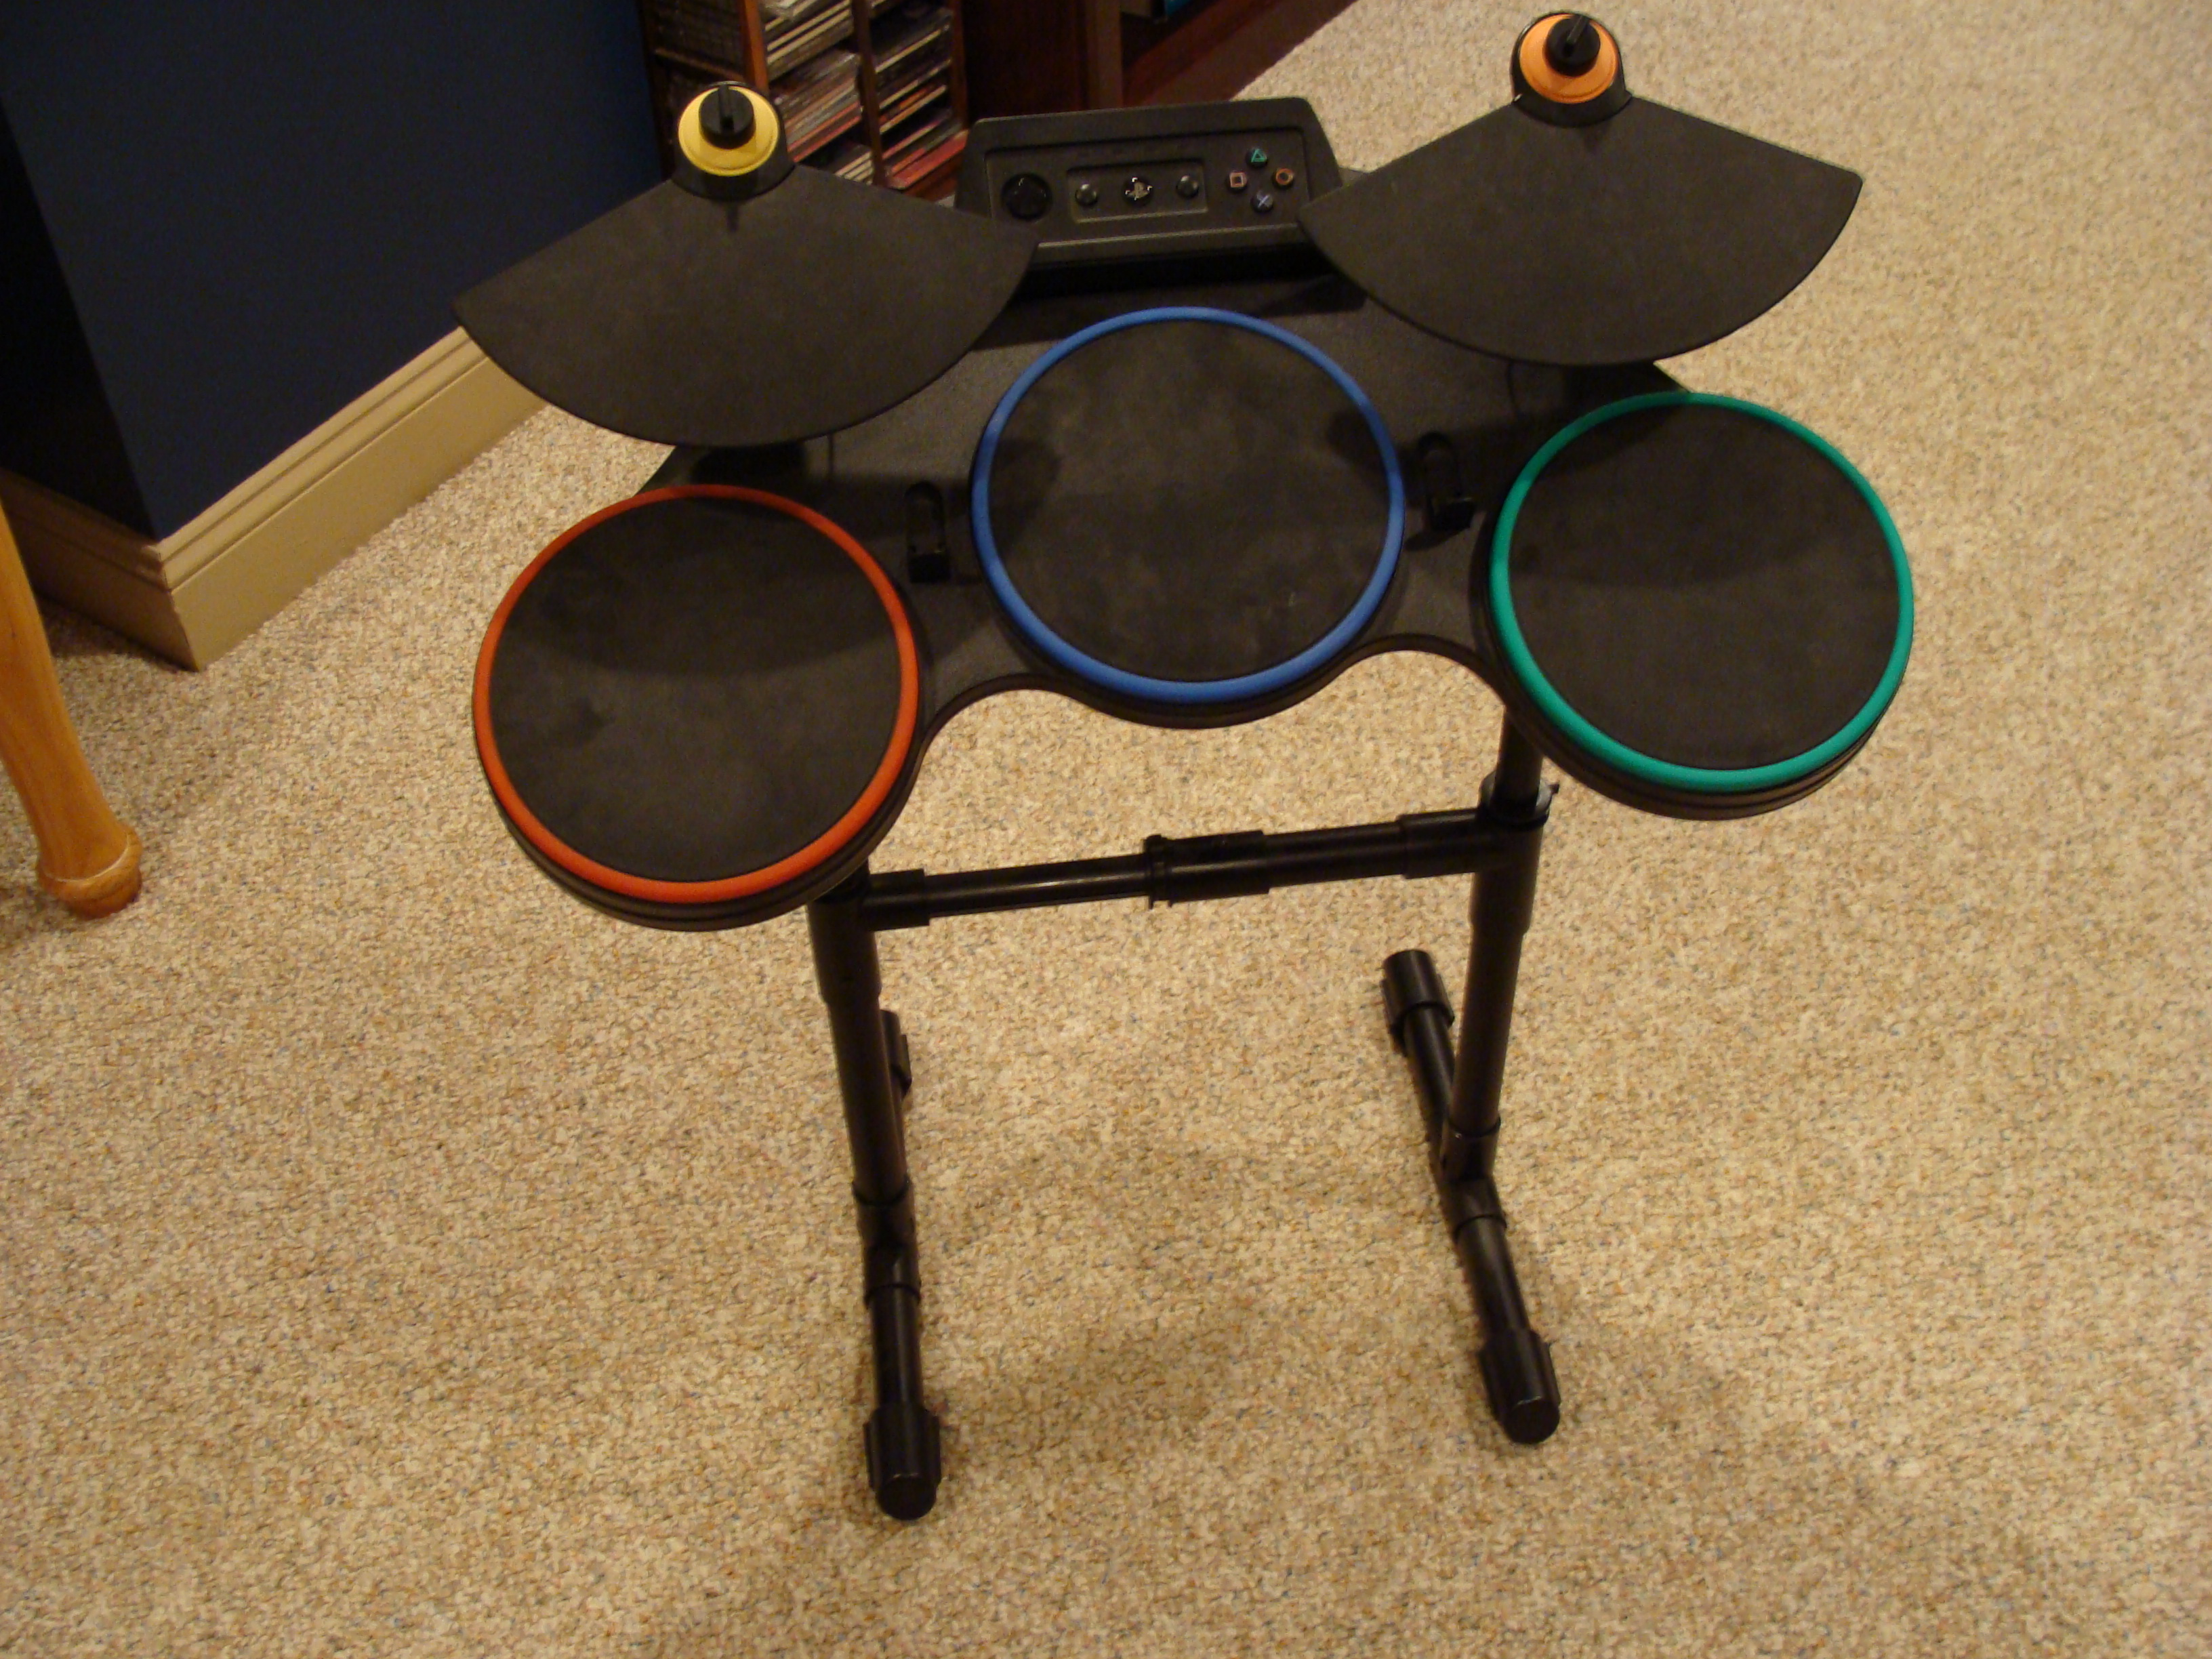 Hack a Guitar Hero drumset to use it with any computer over USB